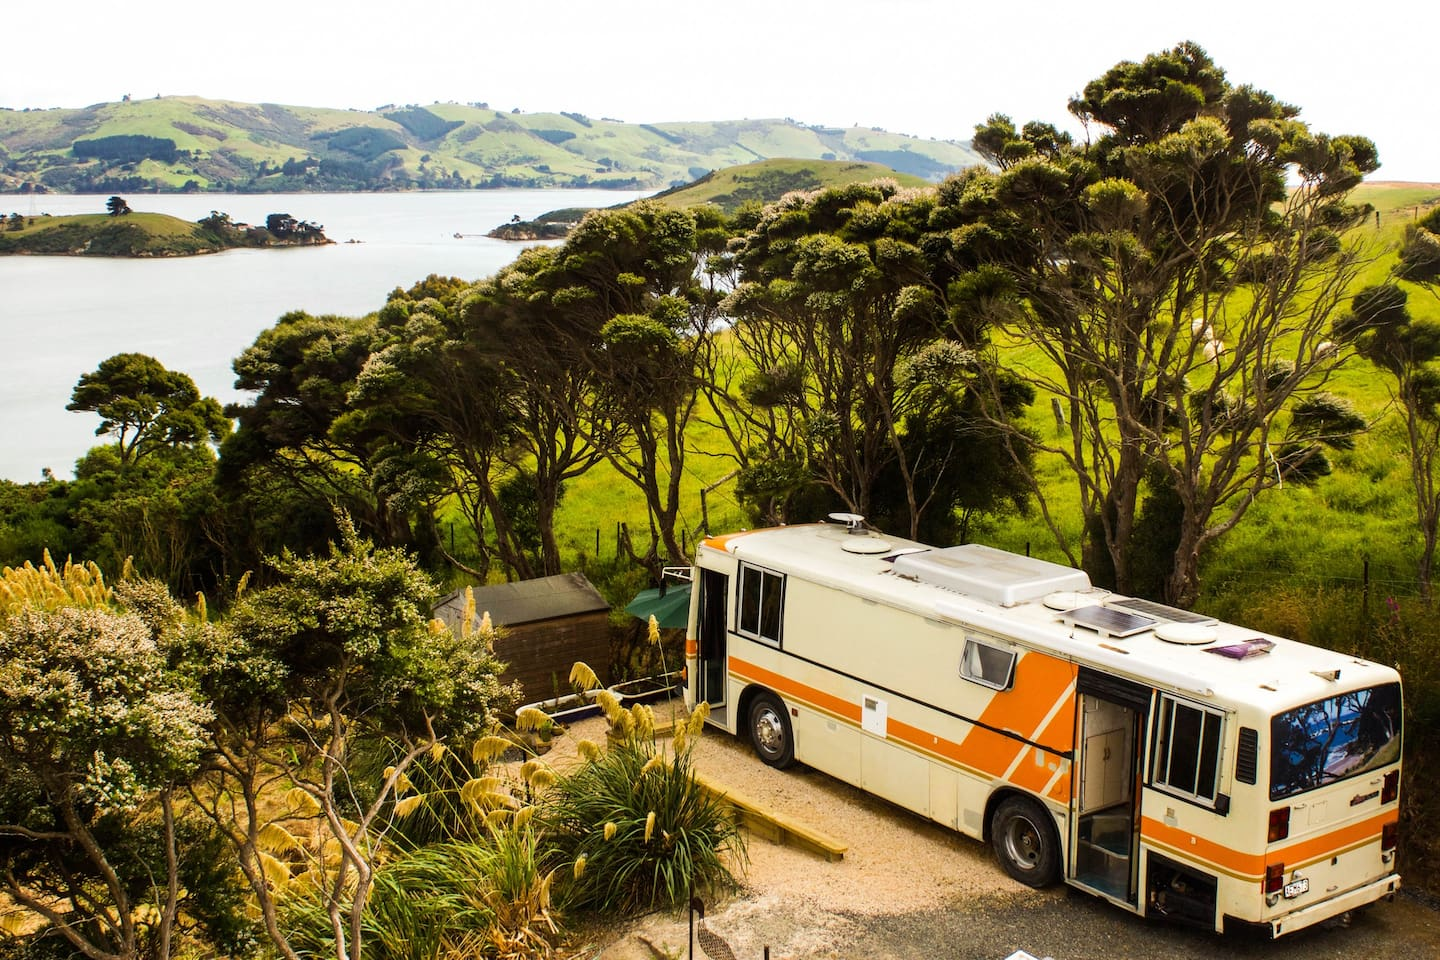 Panoramic views from the luxury bus in lovely peaceful surroundings